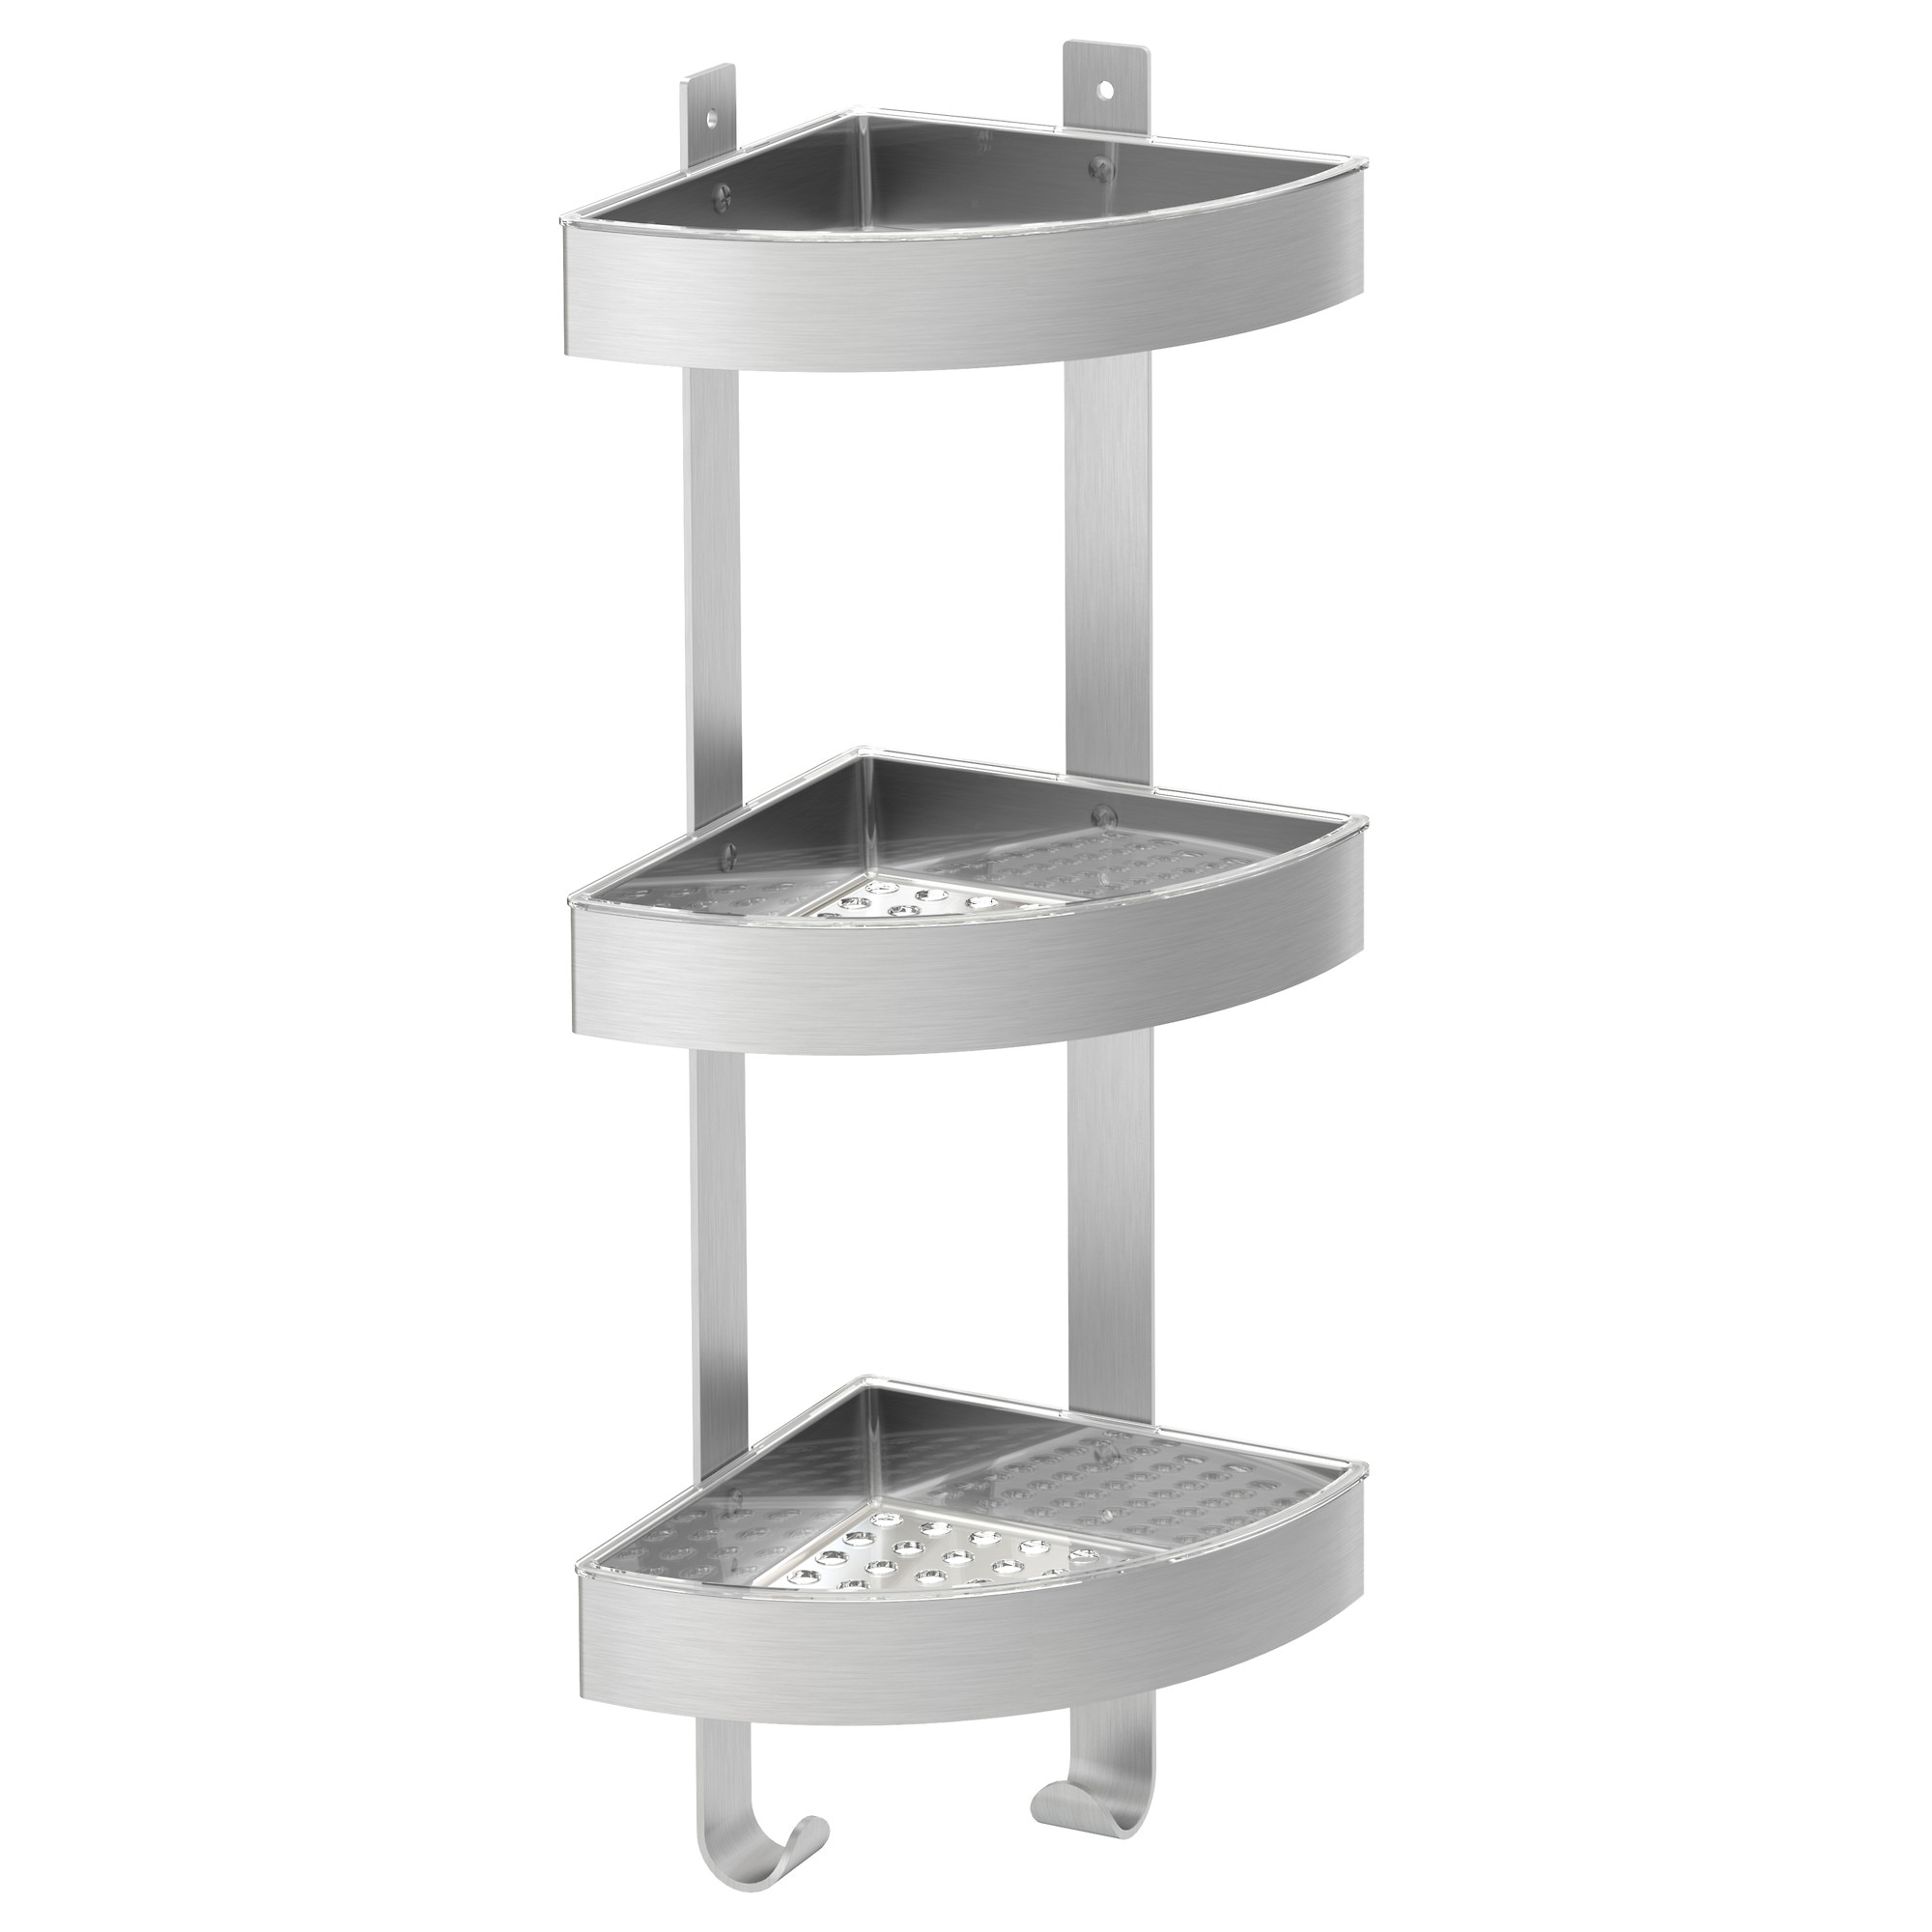 Bathroom wall shelf - Grundtal Corner Wall Shelf Unit Stainless Steel Width 10 Depth 7